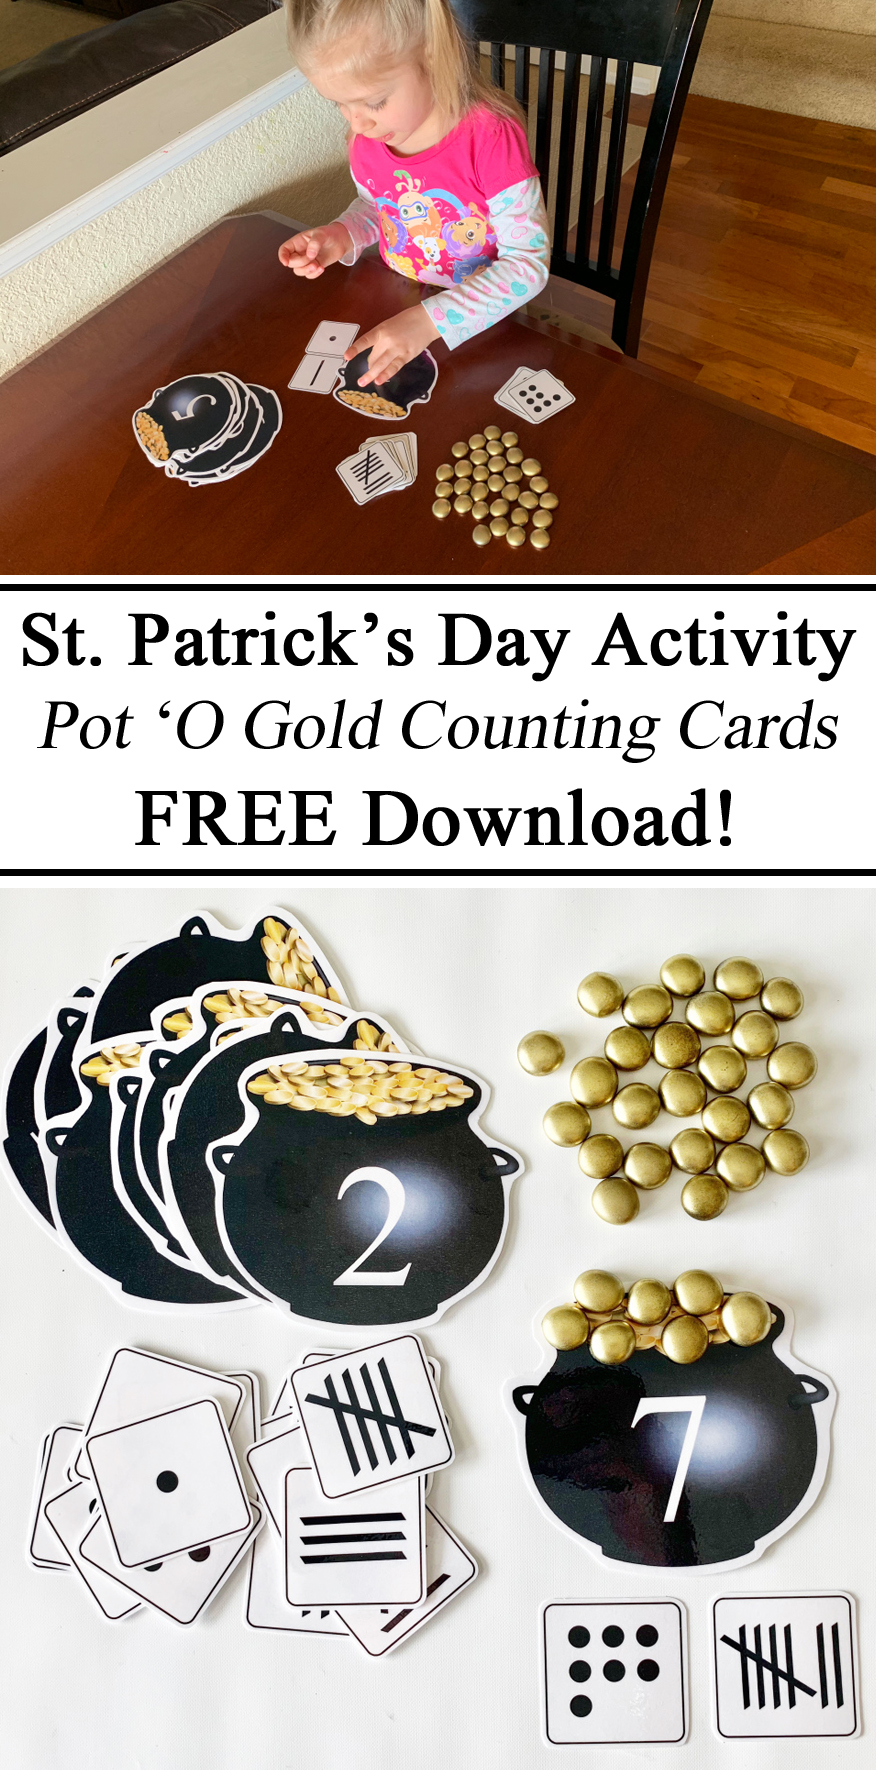 Homeschool, Homeschooling, St. Patrick's Day, Saint, Pot 'O Gold, Free Download, Educational Activities, Learning, Count, Cards, Matching, Preschool, PreK, Ireland Unit,